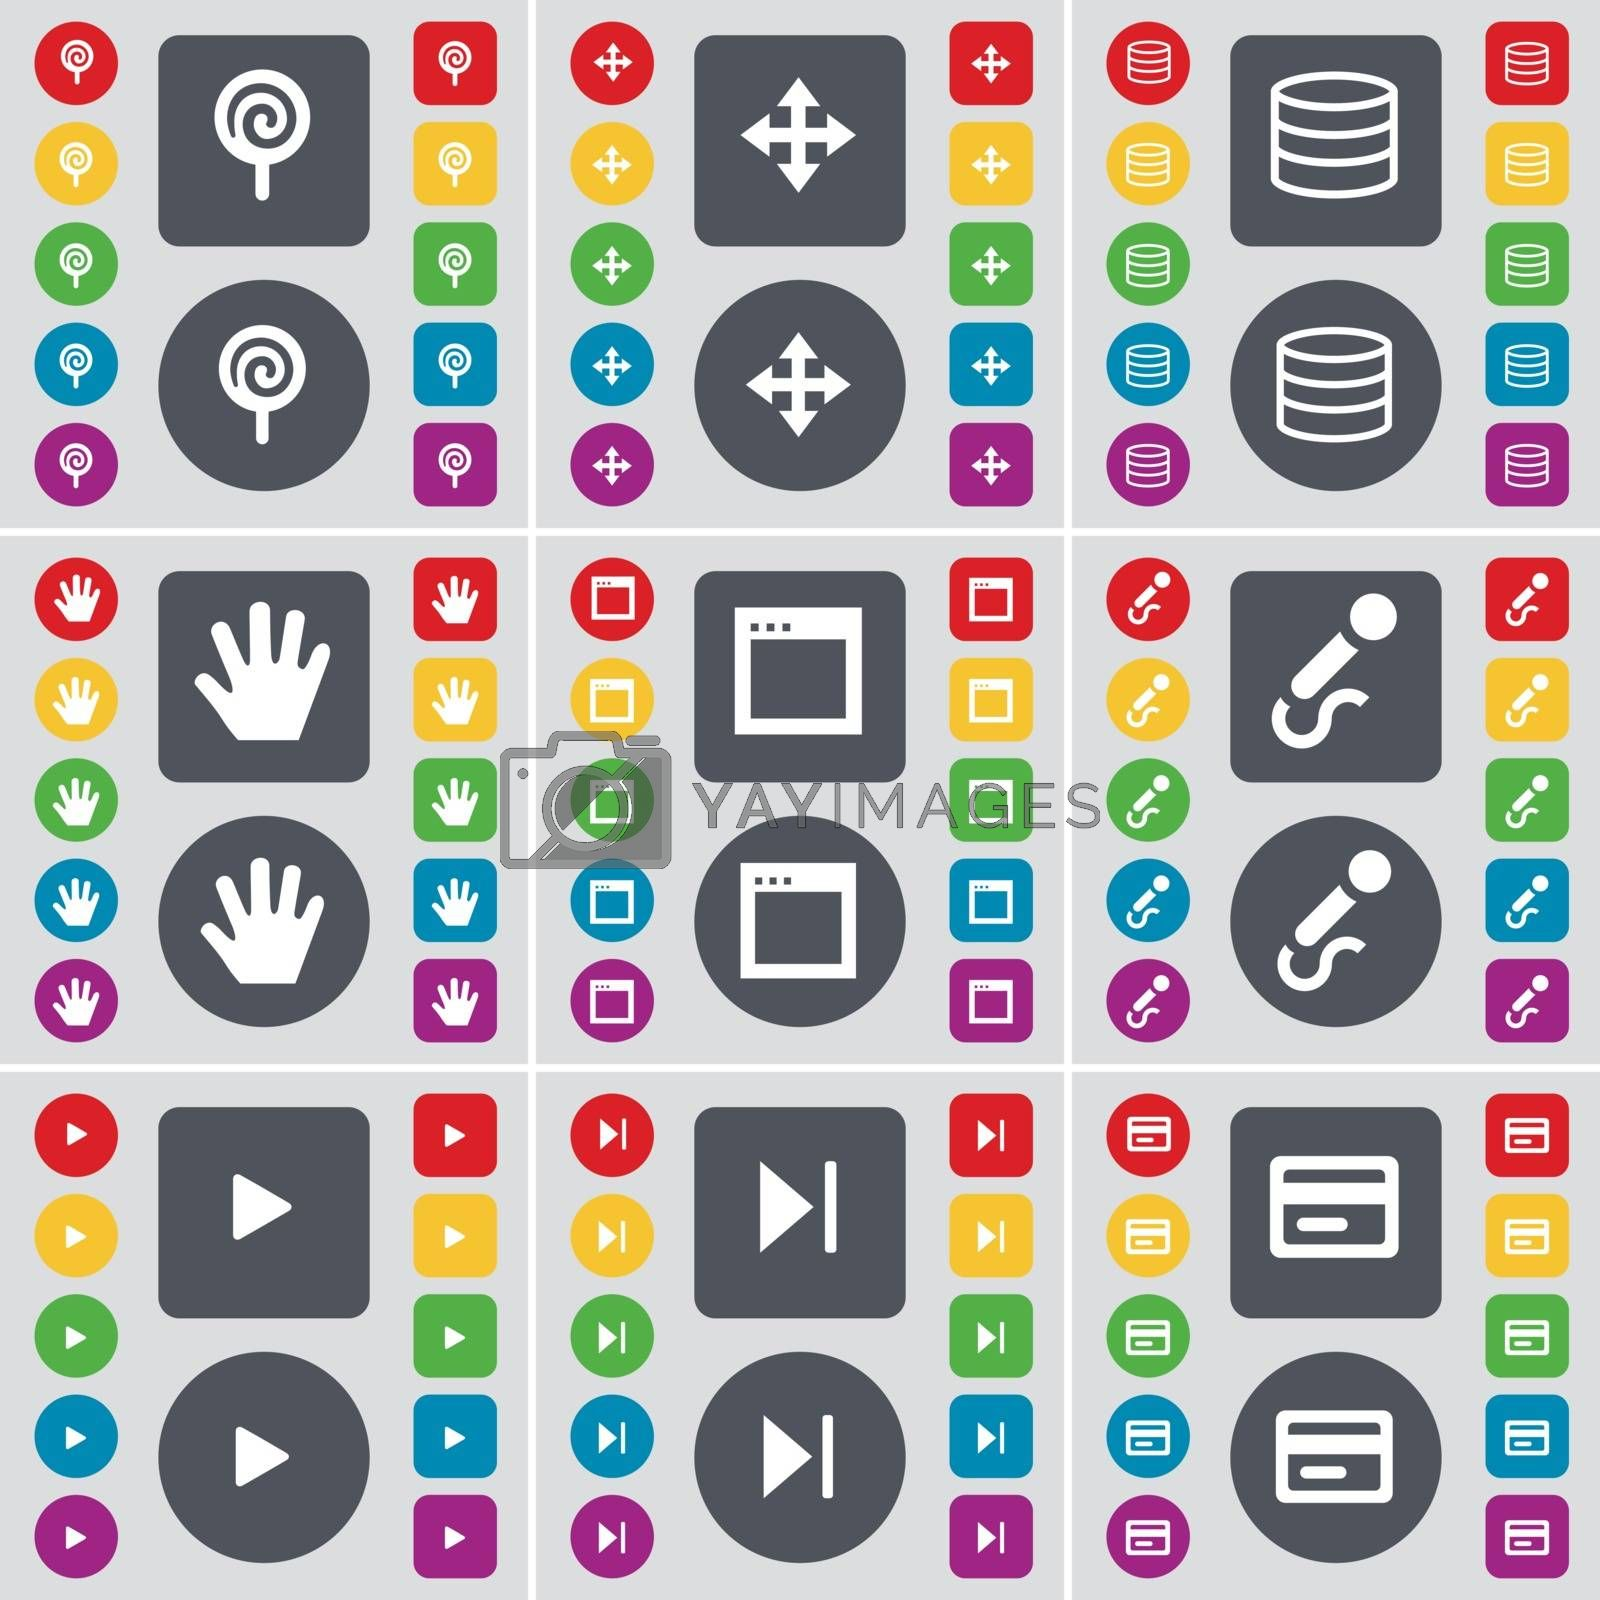 Royalty free image of Lollipop, Moving, Database, Hand, Window, Microphone, Play, Media skip, Credit card icon symbol. A large set of flat, colored buttons for your design. Vector by serhii_lohvyniuk